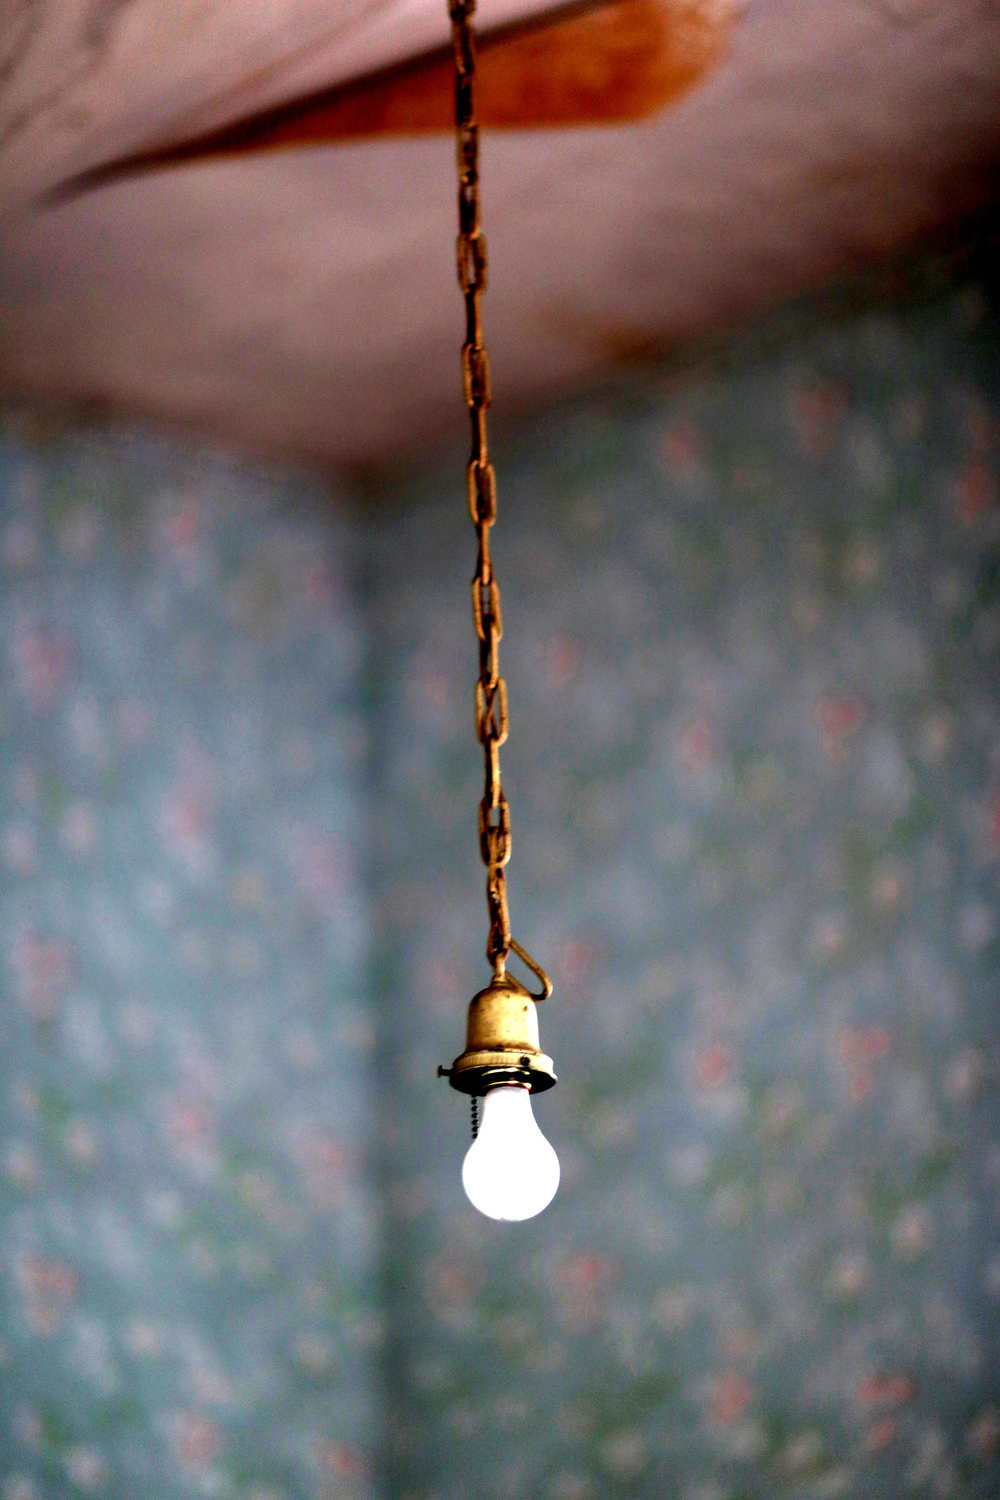 Bare Bulb & Blue Wallpaper